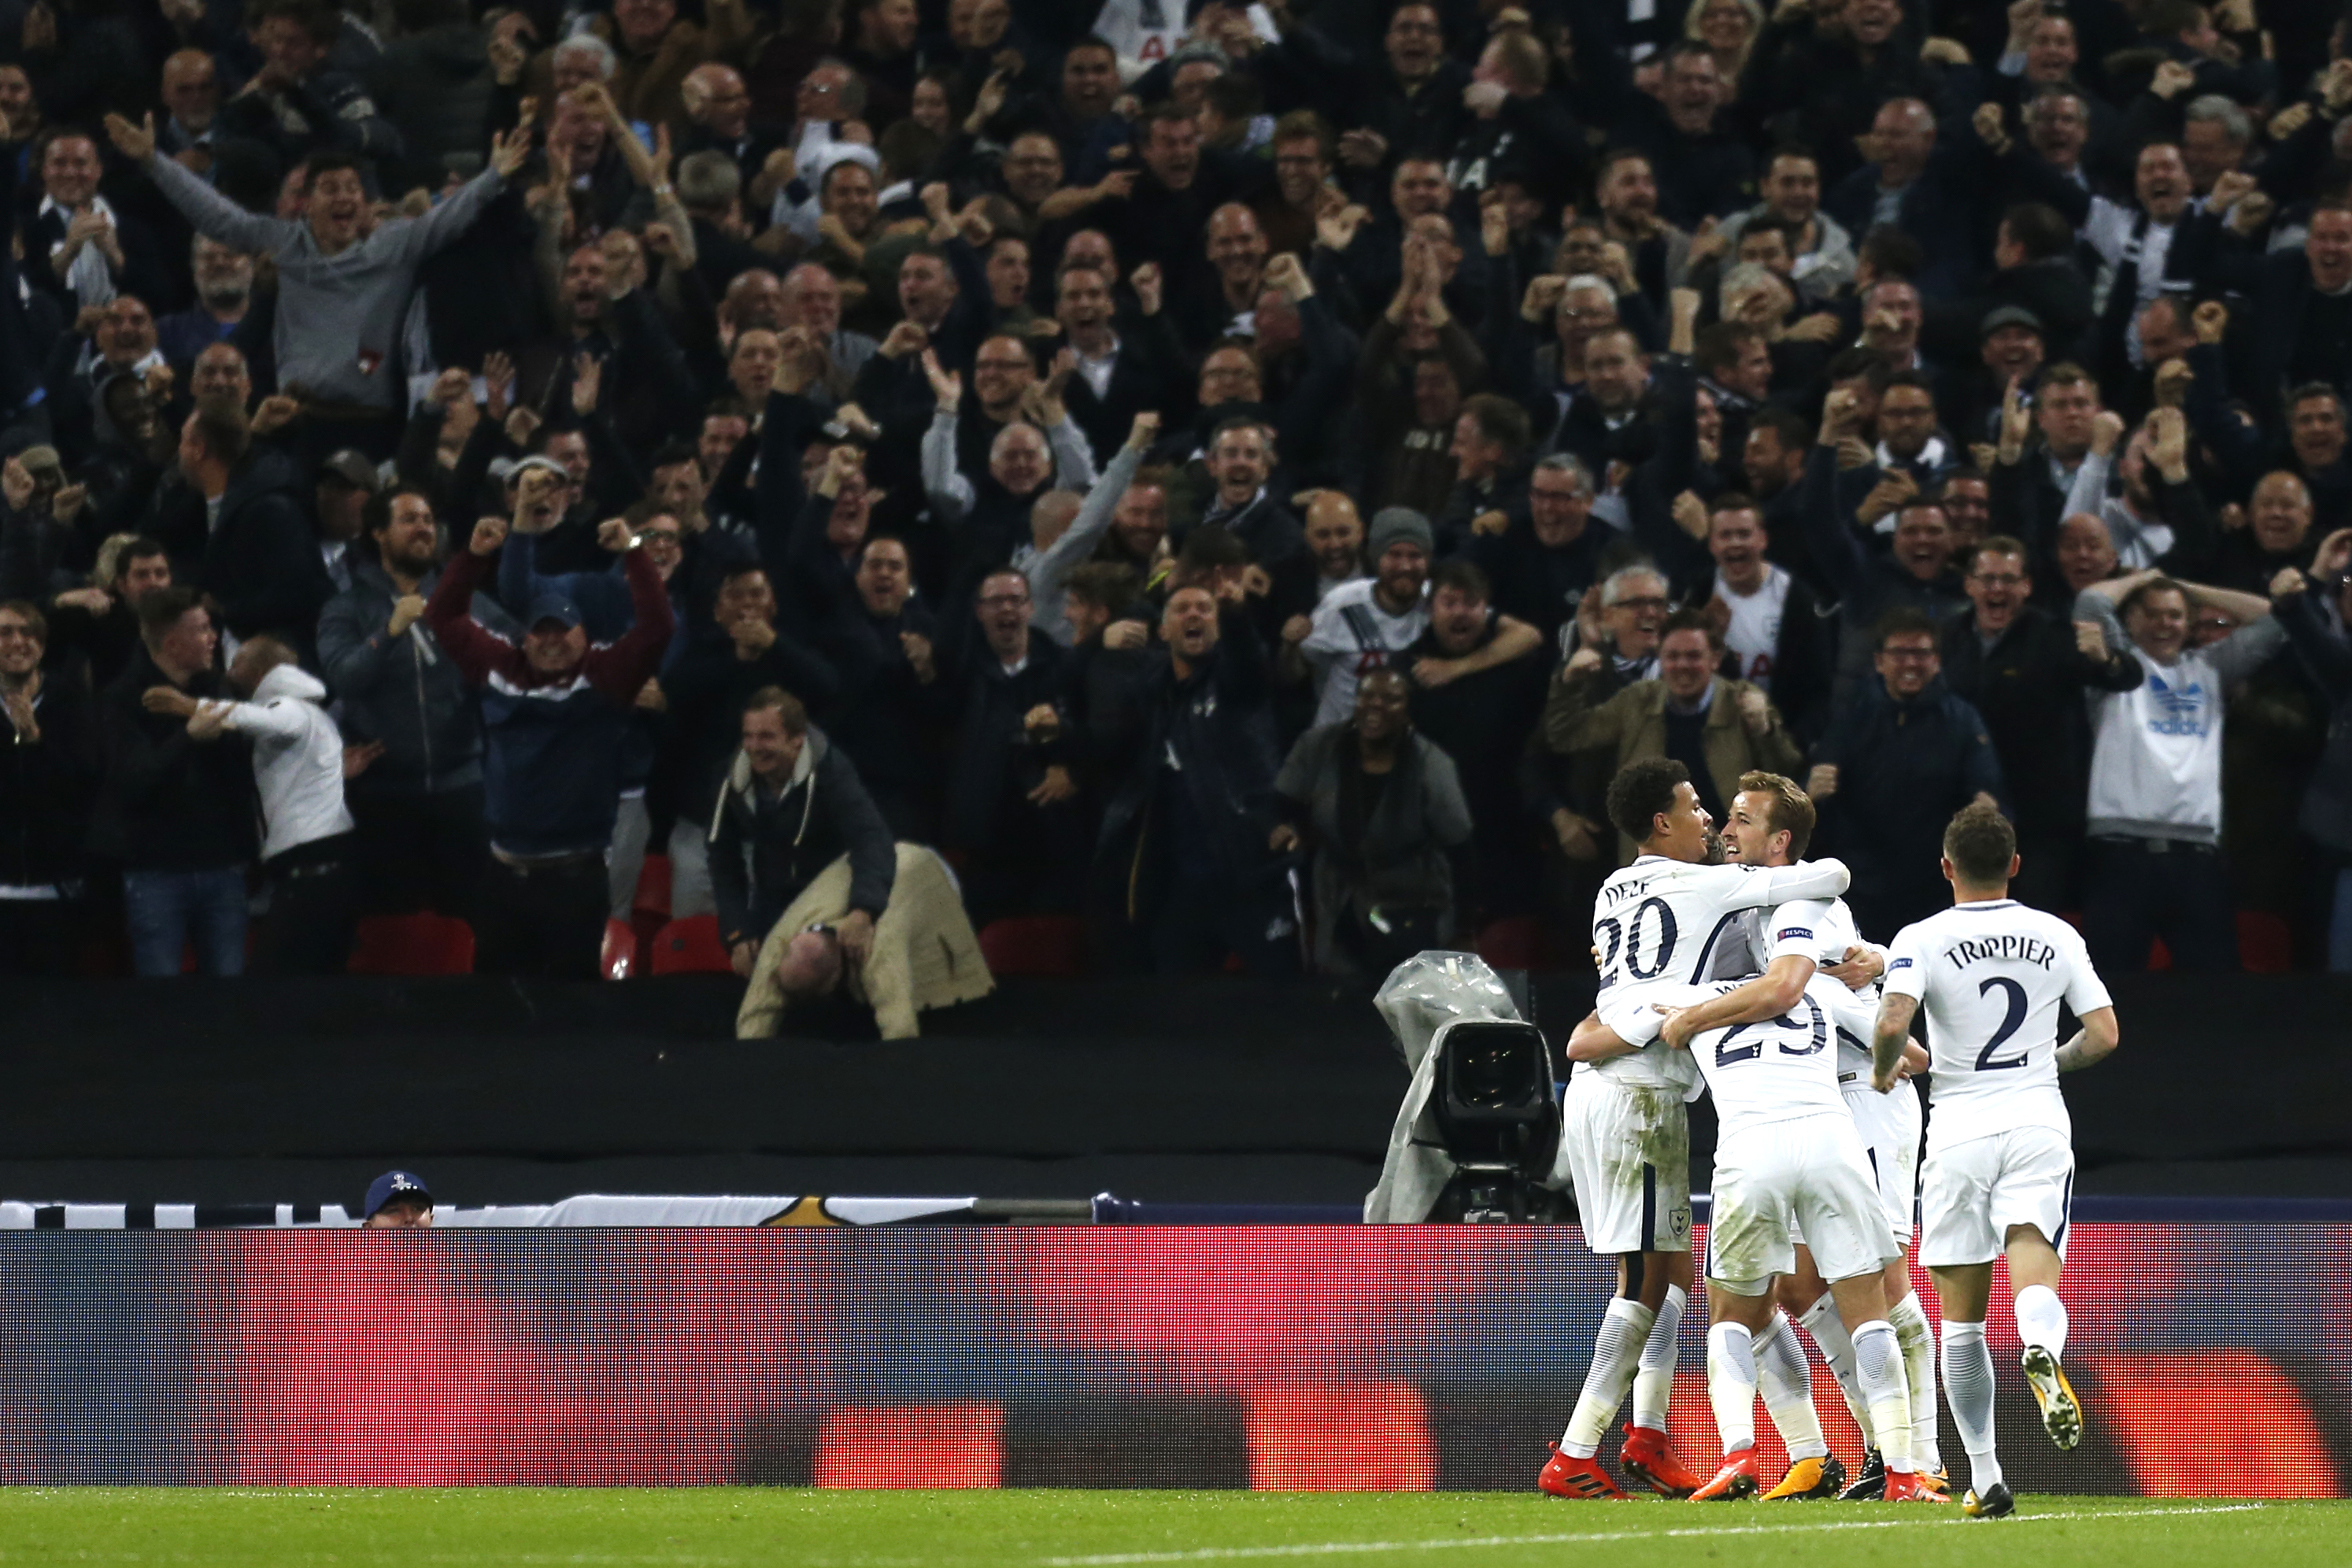 [Ligue des Champions] Tottenham – Real Madrid : les notes